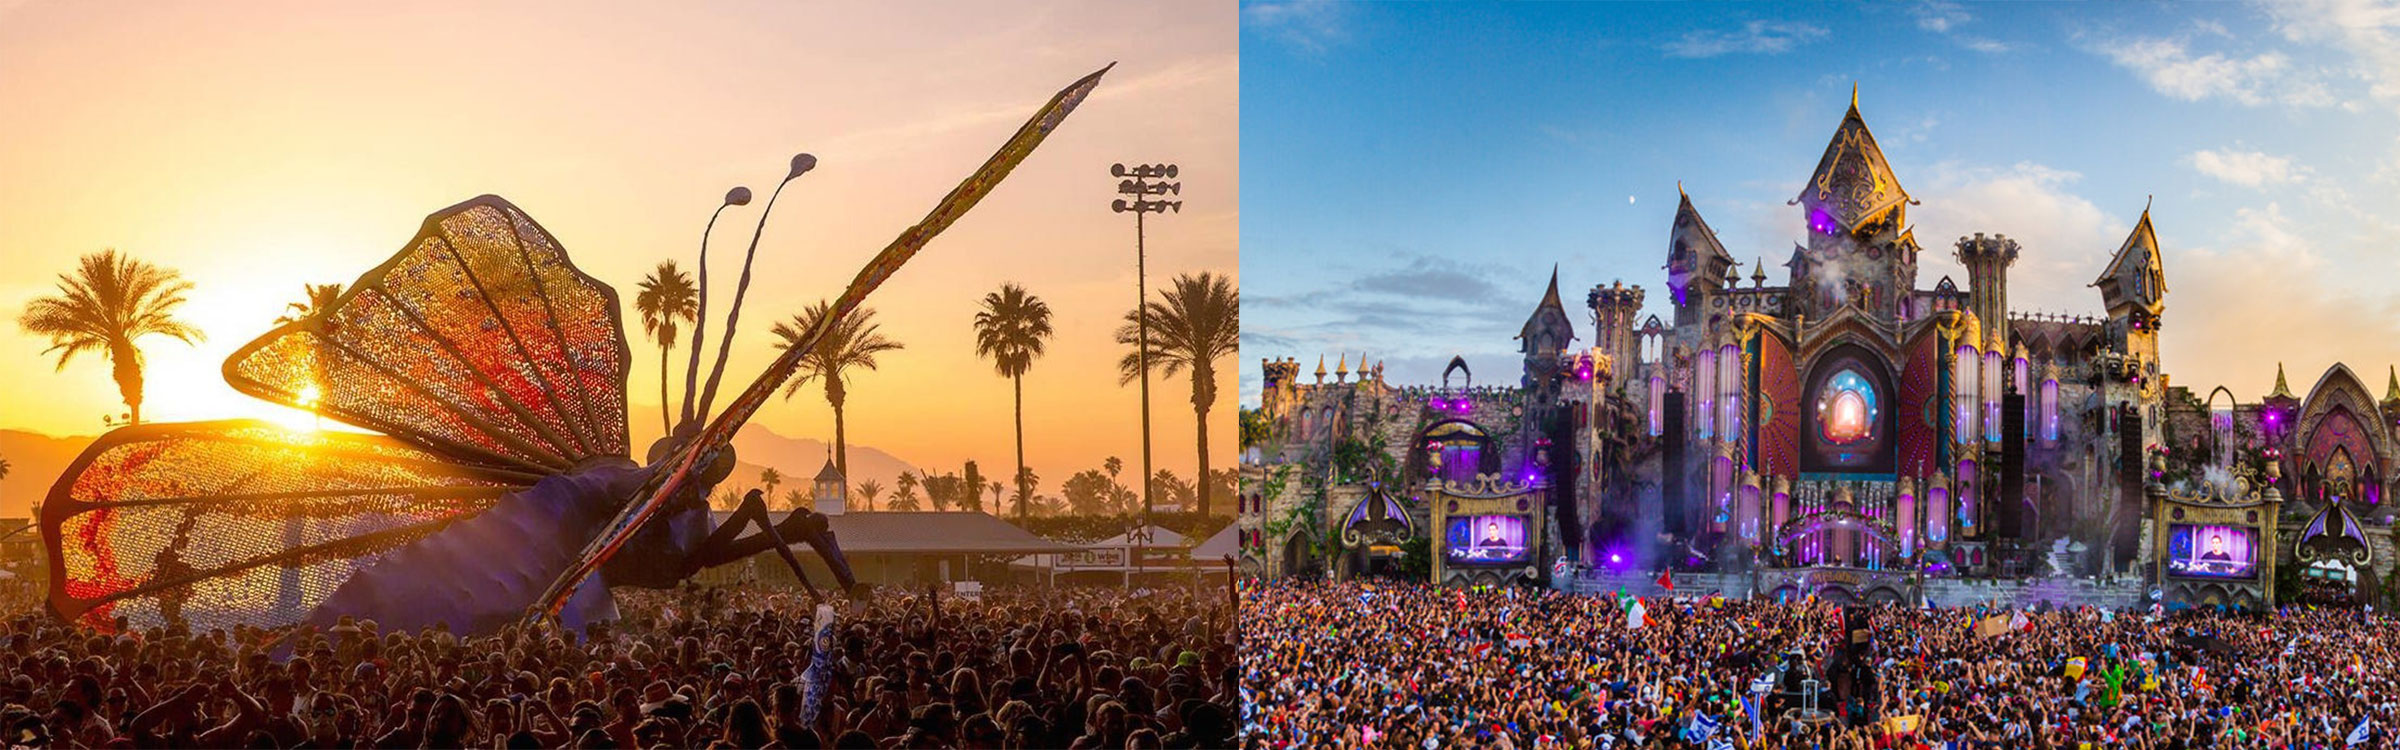 Q 2400x750 coachella vs tomorrowland